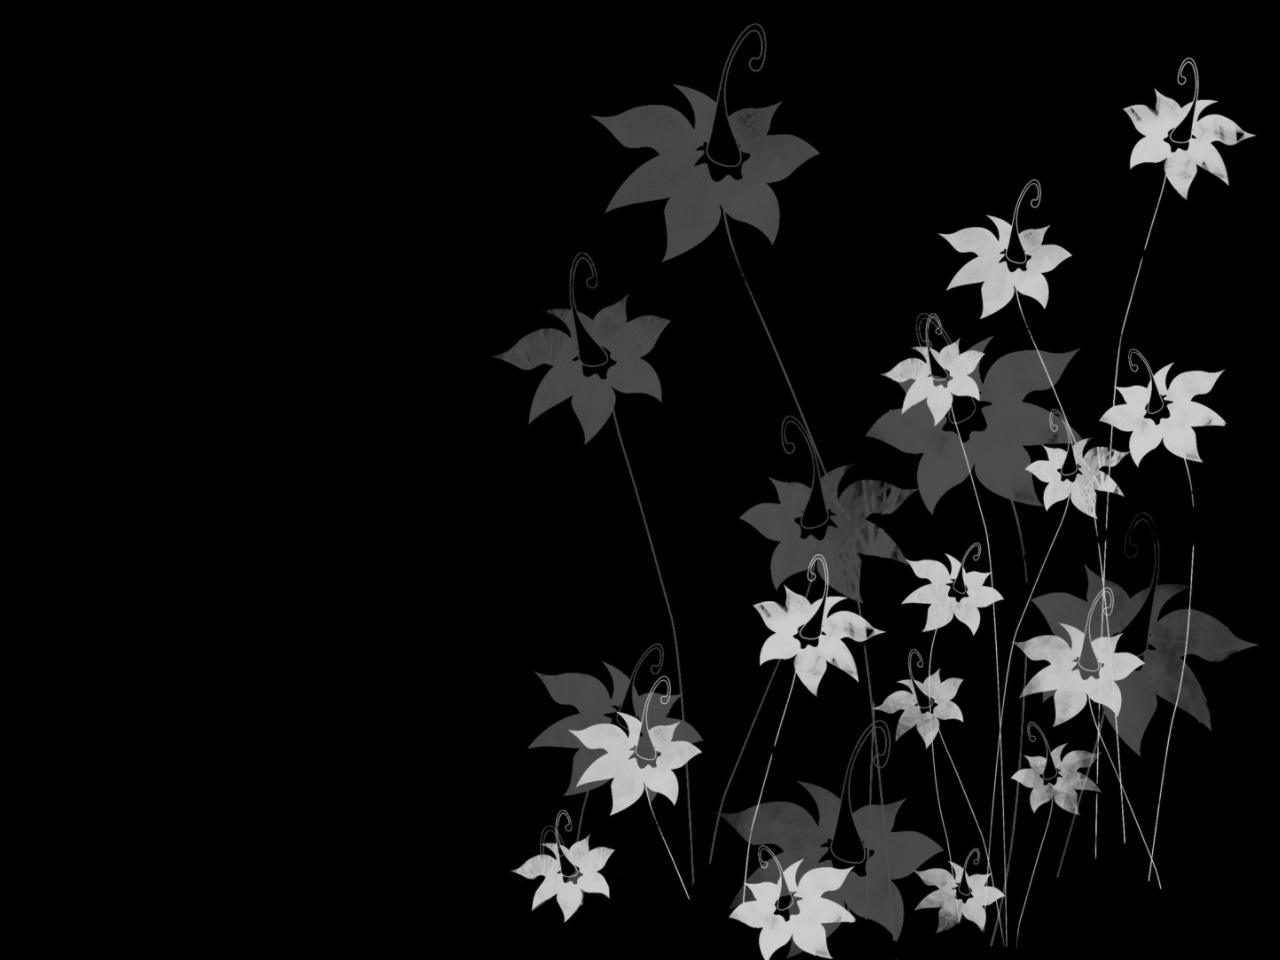 floral wallpaper with black